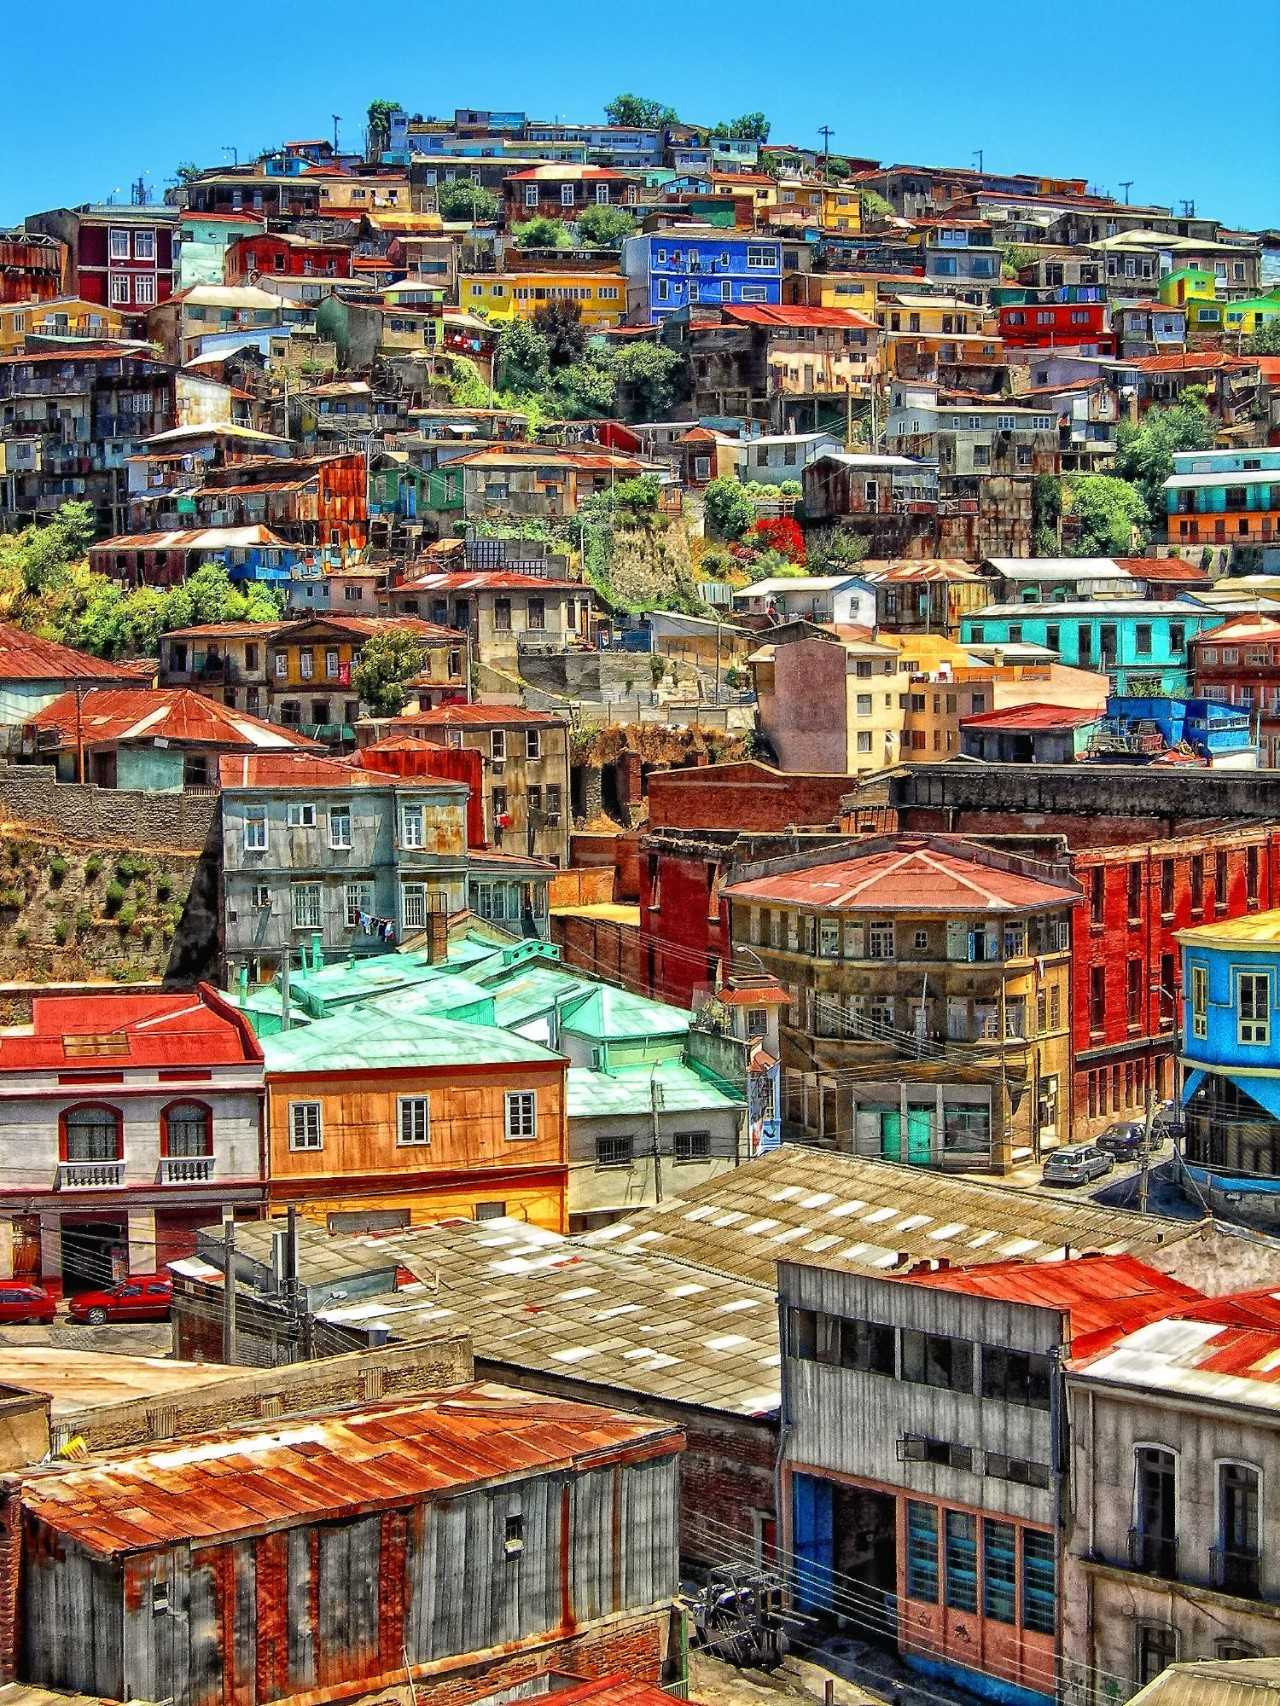 "CITY TRAVEL SOUTH AMERICA GRITTY IS PRETTY: STREET ART IN VALPARAISO | CHILE Posted on March 24, 2017 Vaparaiso Street Art - City View Valparaiso is a bit like San Francisco if the 90's had never ended — think undercuts, paste-ups, and alt-rock bands, with less of the startup douchebaggery. This gritty city by the bay is true to its bohemian roots. There are local events and art exhibits abound, plenty of spots to catch a cheap show, and street art just about everywhere. What more could you want, really? Time in Valparaiso goes down faster than a street dog eats a completo. It is the kind of place you can stay for far too long without other plans to drag you away. Are you planning a visit to Valparaiso? There are plenty of cool things to do in Chile, but be sure to make time to stay and check out the Valparaiso street art. More information on where to find street art + street art tours in Valparaiso below! Valparaiso Street Art Under the Pinochet dictatorship, street art in Chile emerged as a form of protest. It could be done anonymously, so it was one of the safest ways to speak out during quite dangerous times. Decades later, street art is more popular than ever. Local and international artists have developed unique styles and tested them out all over Valpo. You'll find everything from B.R.P, to fauvism, cubism, to wild style decorating the city walls without even having to look too hard.Vaparaiso Street Art - Woman with Sunrise on her Face Almost every building, wall, and storefront is painted in Valpo, with one notable exception – the pitifully white Radio Portales building. Strangely, it's also the most tagged building in Valparaiso. What keeps it so white? Paint jobs. Daily. The rest of Valparaiso, on the other hand, has seemed to adopt the attitude that if you can't beat 'em, join 'em. Businesses and homeowners can either be the local tight ass and fall victim to ugly tags, or they can go ahead and share their wall with a muralist. This culture is what has made the city of Valparaiso into one enormous canvas for spray can art. Vaparaiso Street Art - Taylor in front of a wall Vaparaiso Street Art - Headless Body Vaparaiso Street Art - Homage to ChiloeVaparaiso Street Art -Bus Crossing a Colorful Mural Vaparaiso Street Art - Ally checking out the street art Vaparaiso Street Art - Former ""Happies not Hippies"" Mural Valparaiso Street Art - Man Eating an OctopusVaparaiso Street Art - Hand Grabbing PortholeVaparaiso Street Art - Bored WomanVaparaiso Street Art - Yellow Mural Dig the street art in Valparaiso? Don't forget to follow the artists on Instagram! 1. Man holding a fish bowl by Mr. L 